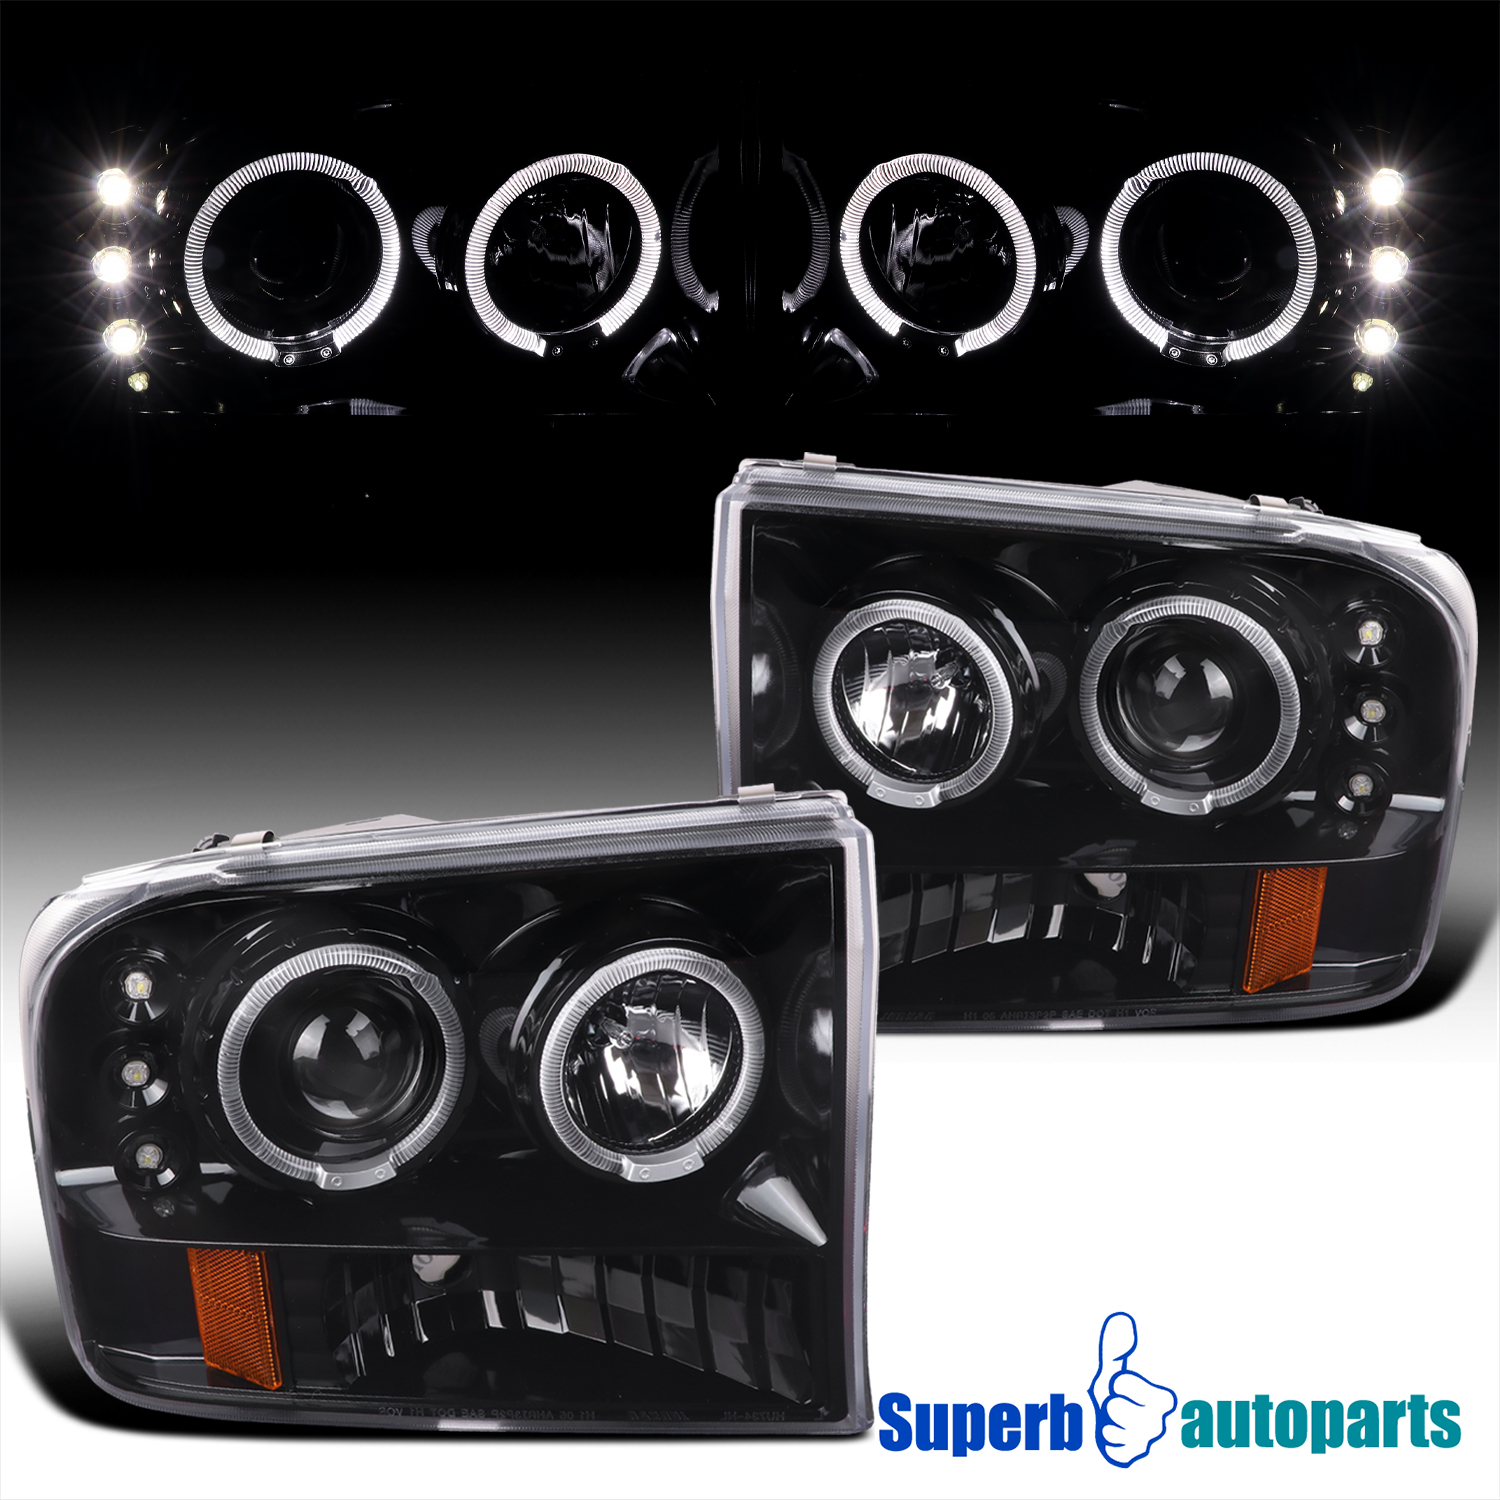 99 F350 Headlights >> Details About For 99 04 Ford F250 F350 Super Duty Shiny Black Led Halo Projector Headlights